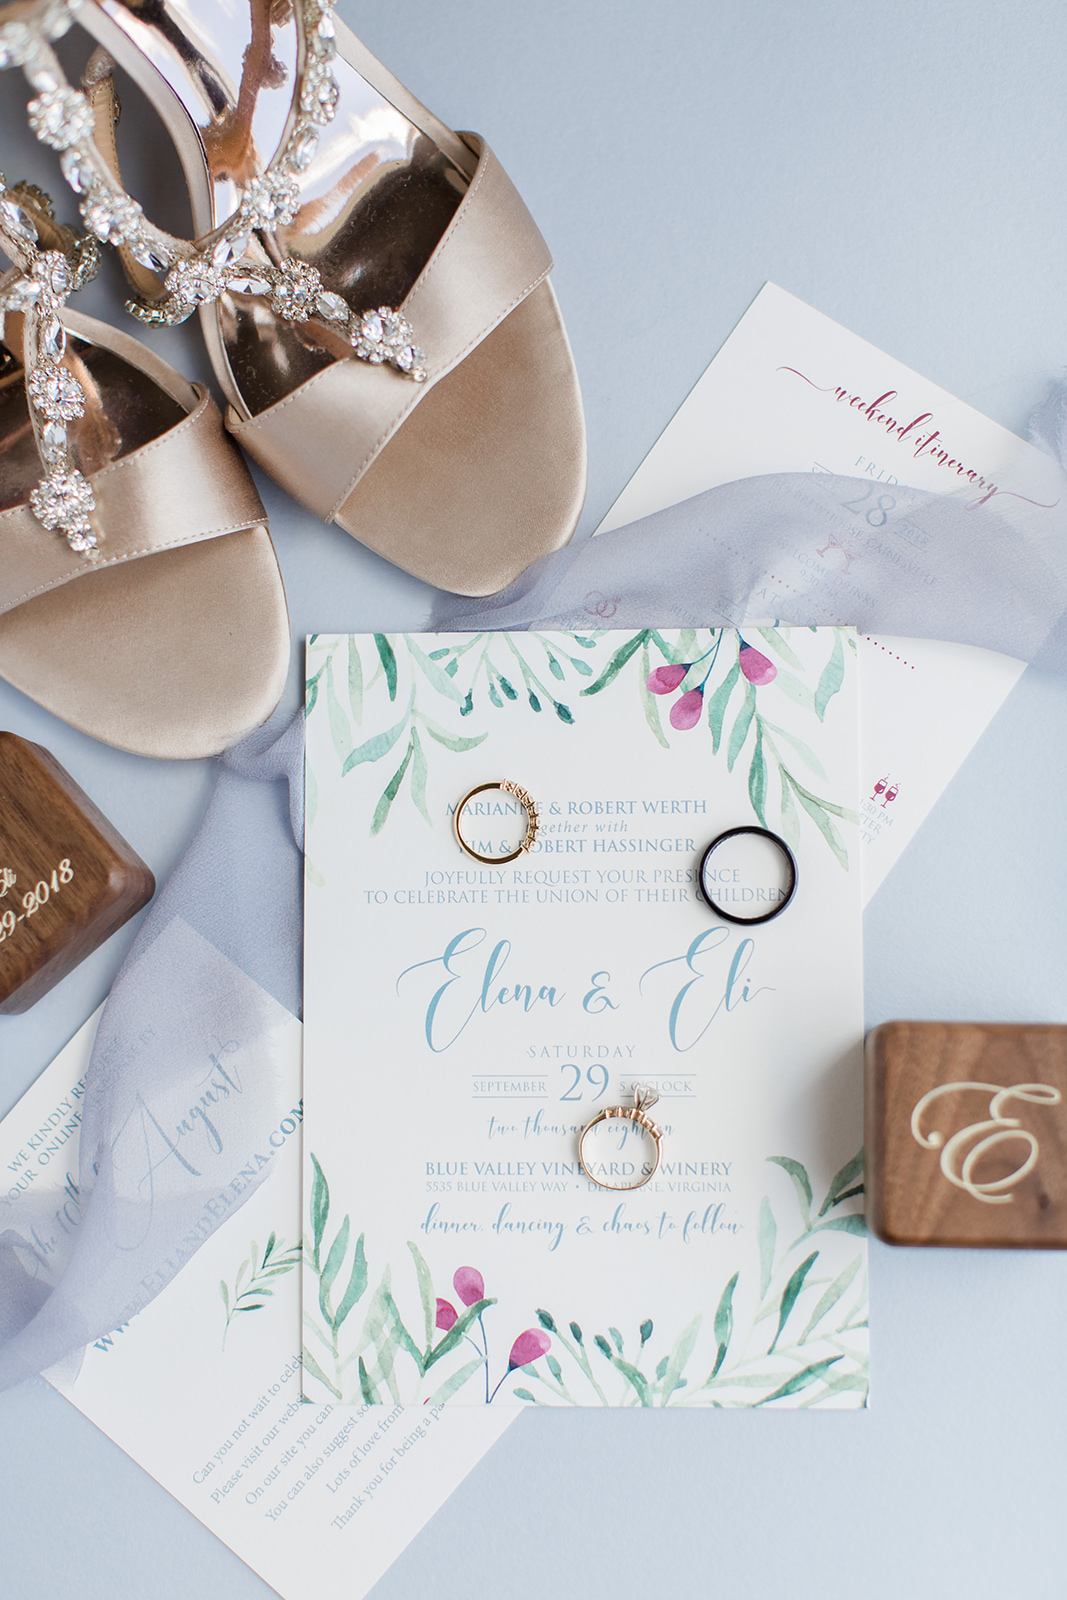 Custom wedding invitations feature greenery a pop of cranberry and a soft dusty blue color.